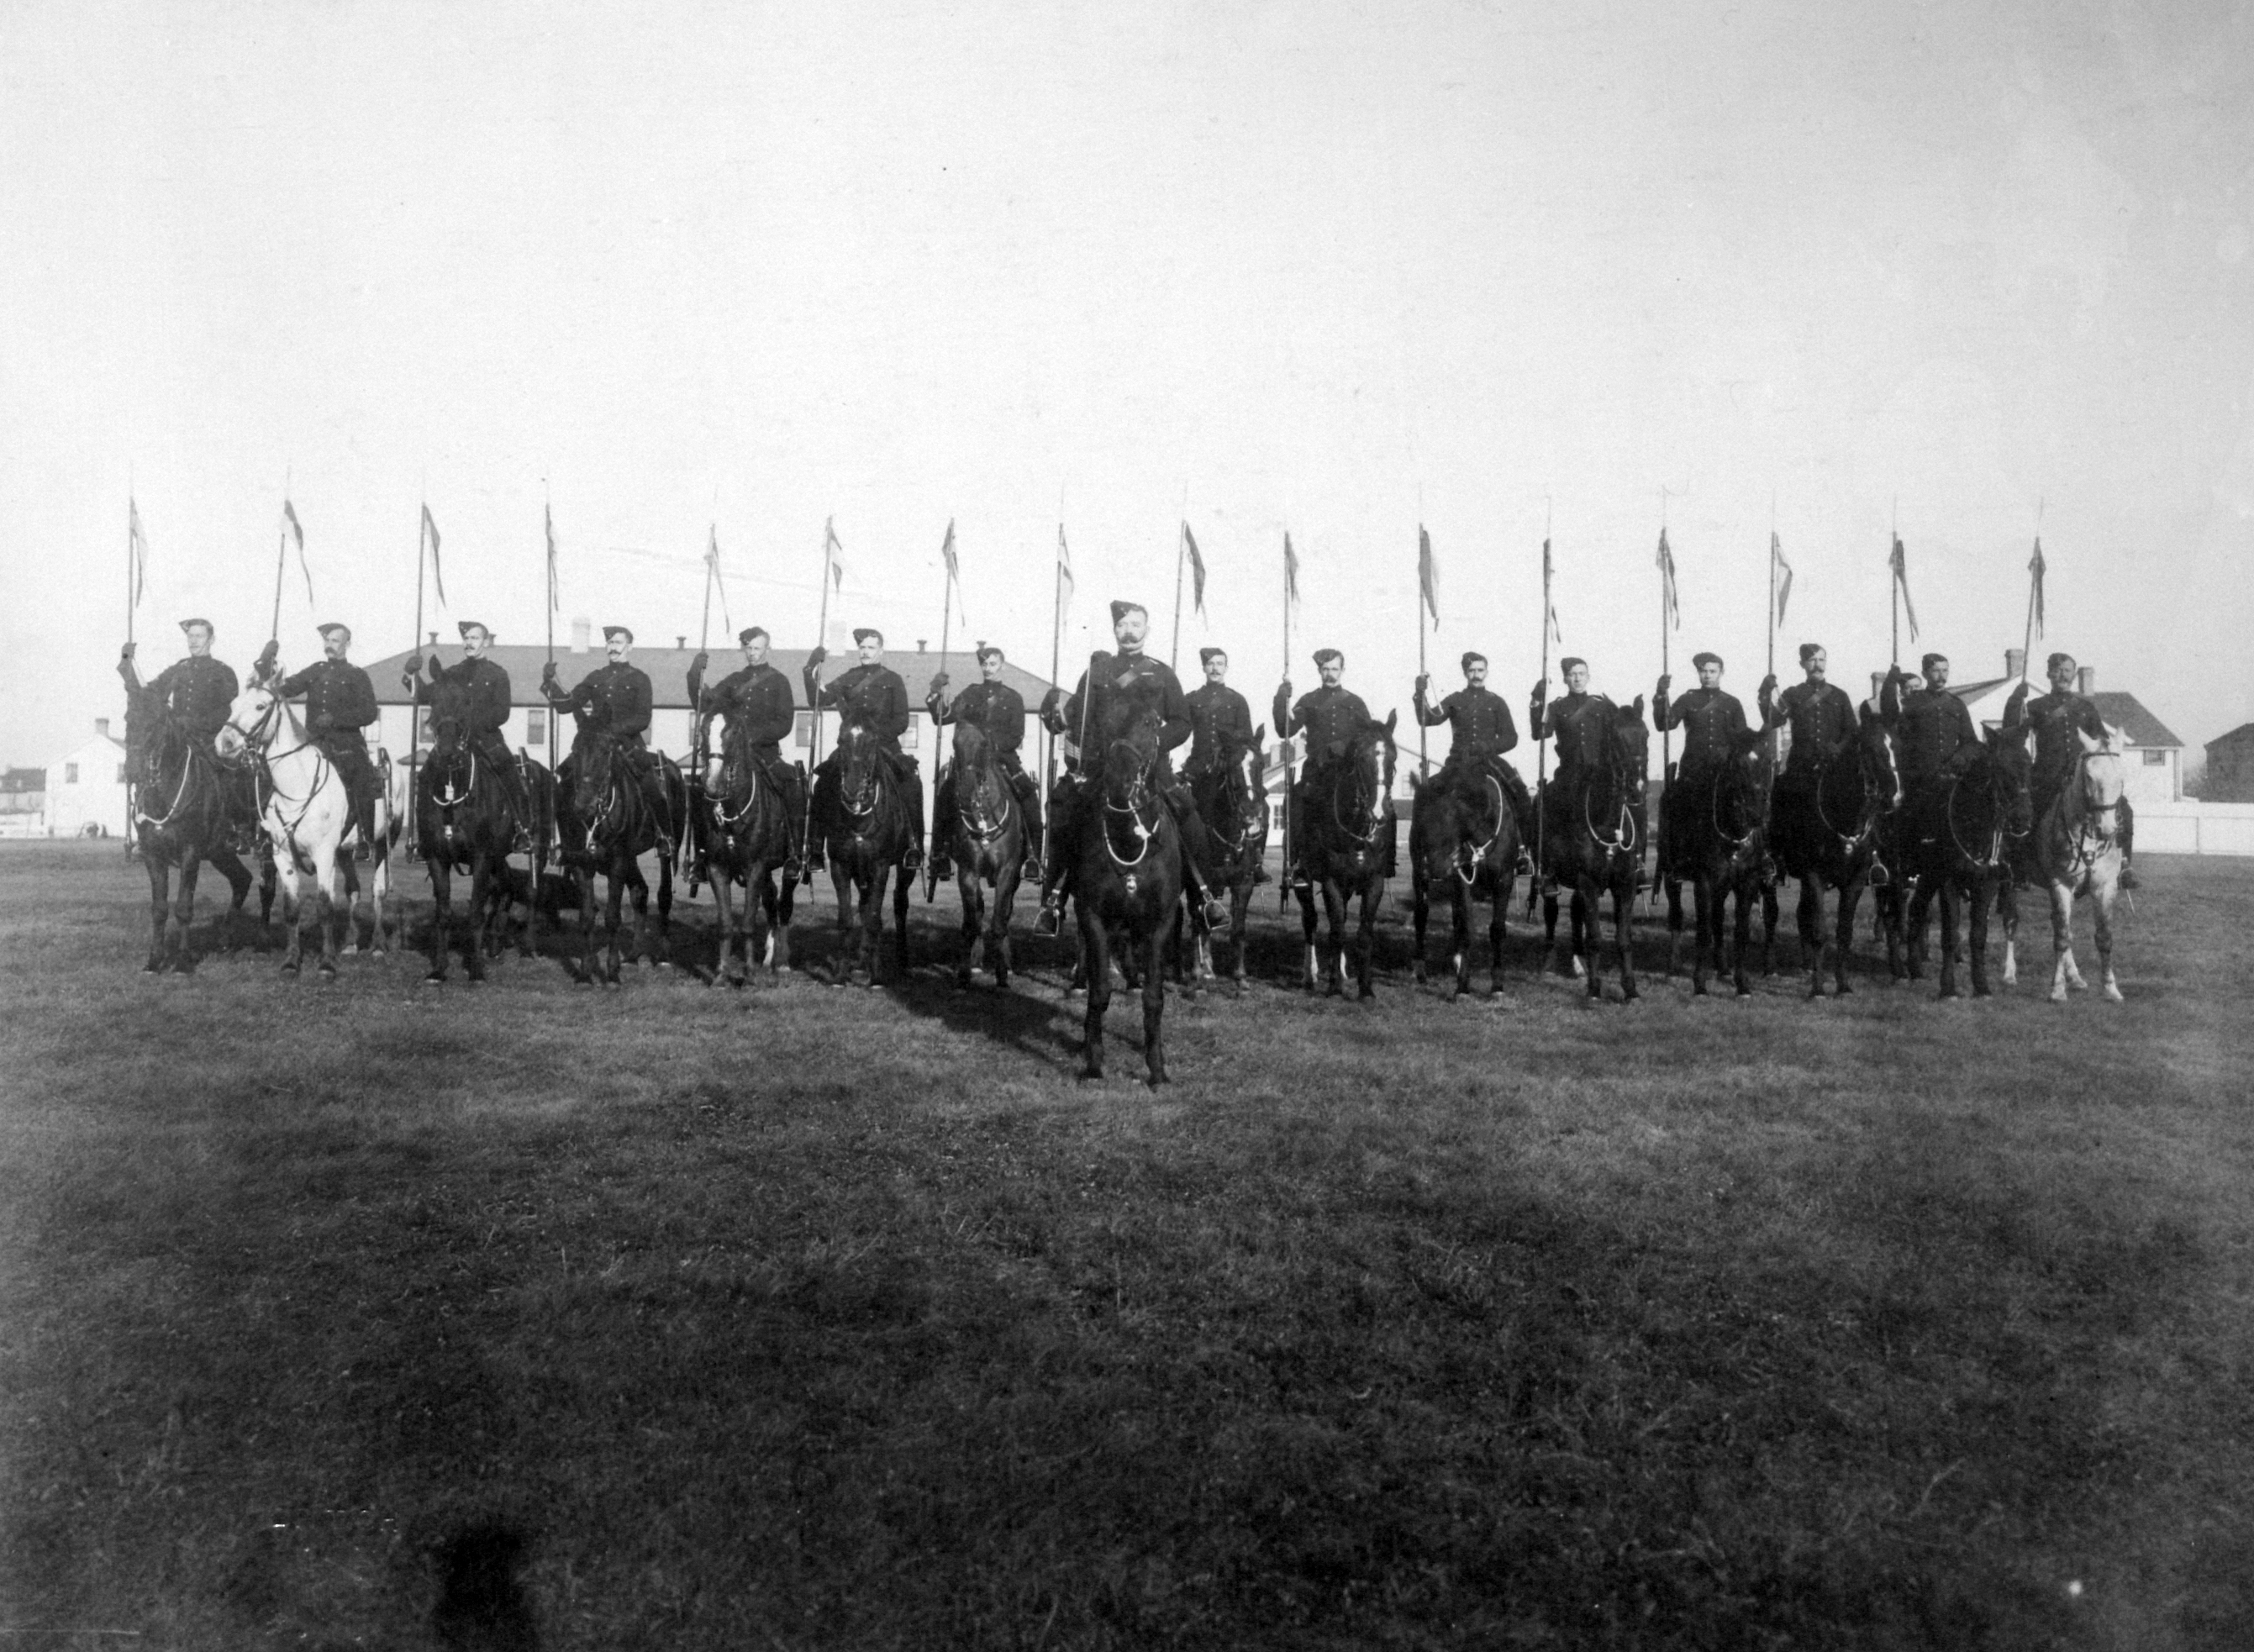 Troop front. Canadian Mounted Rifles with 2nd Contingent, South Africa during the Second Boar War, 1900.